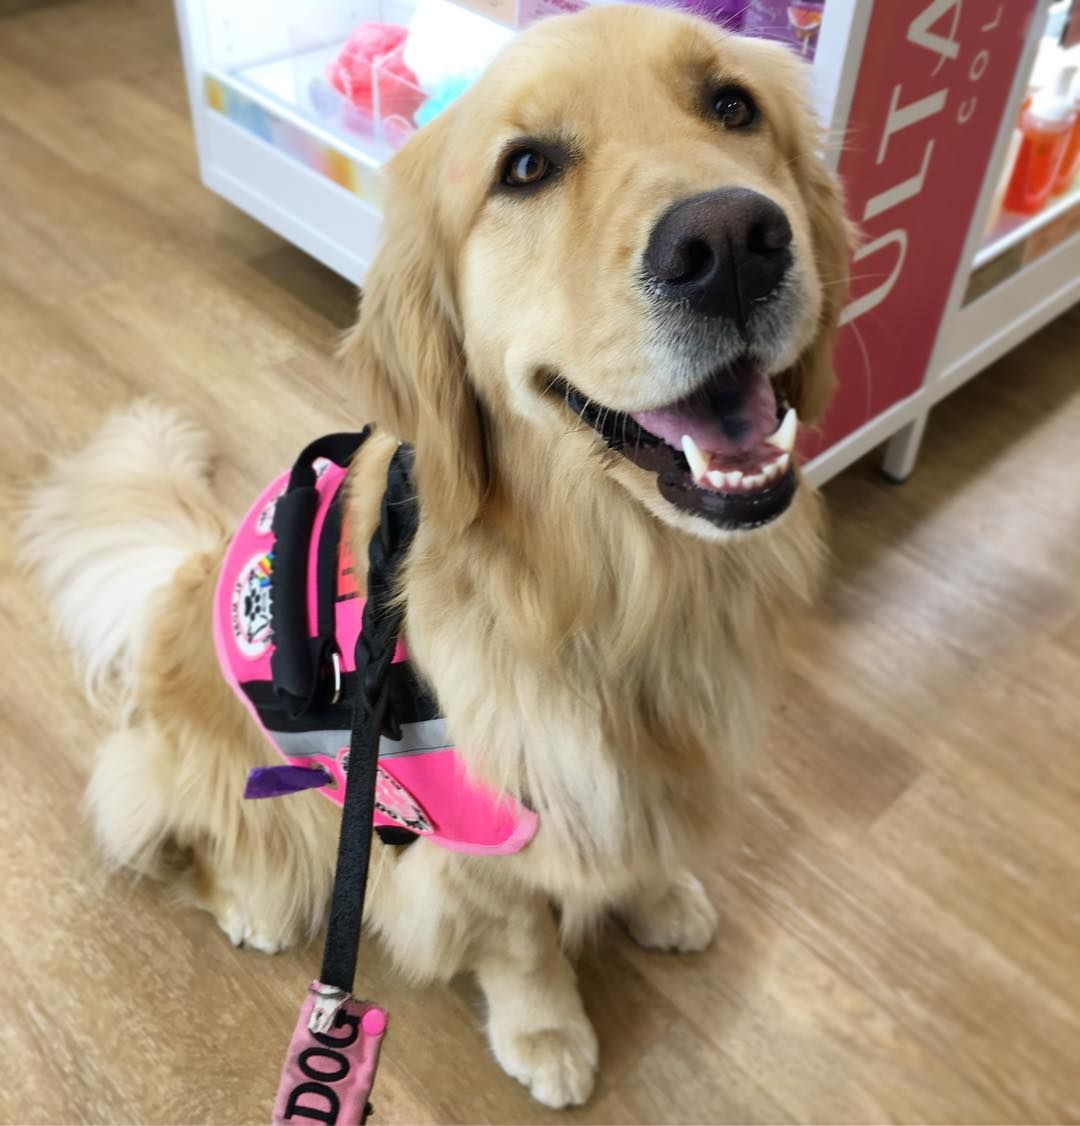 Percie The Service Dog Service Dog Pink Vest Golden Retriever